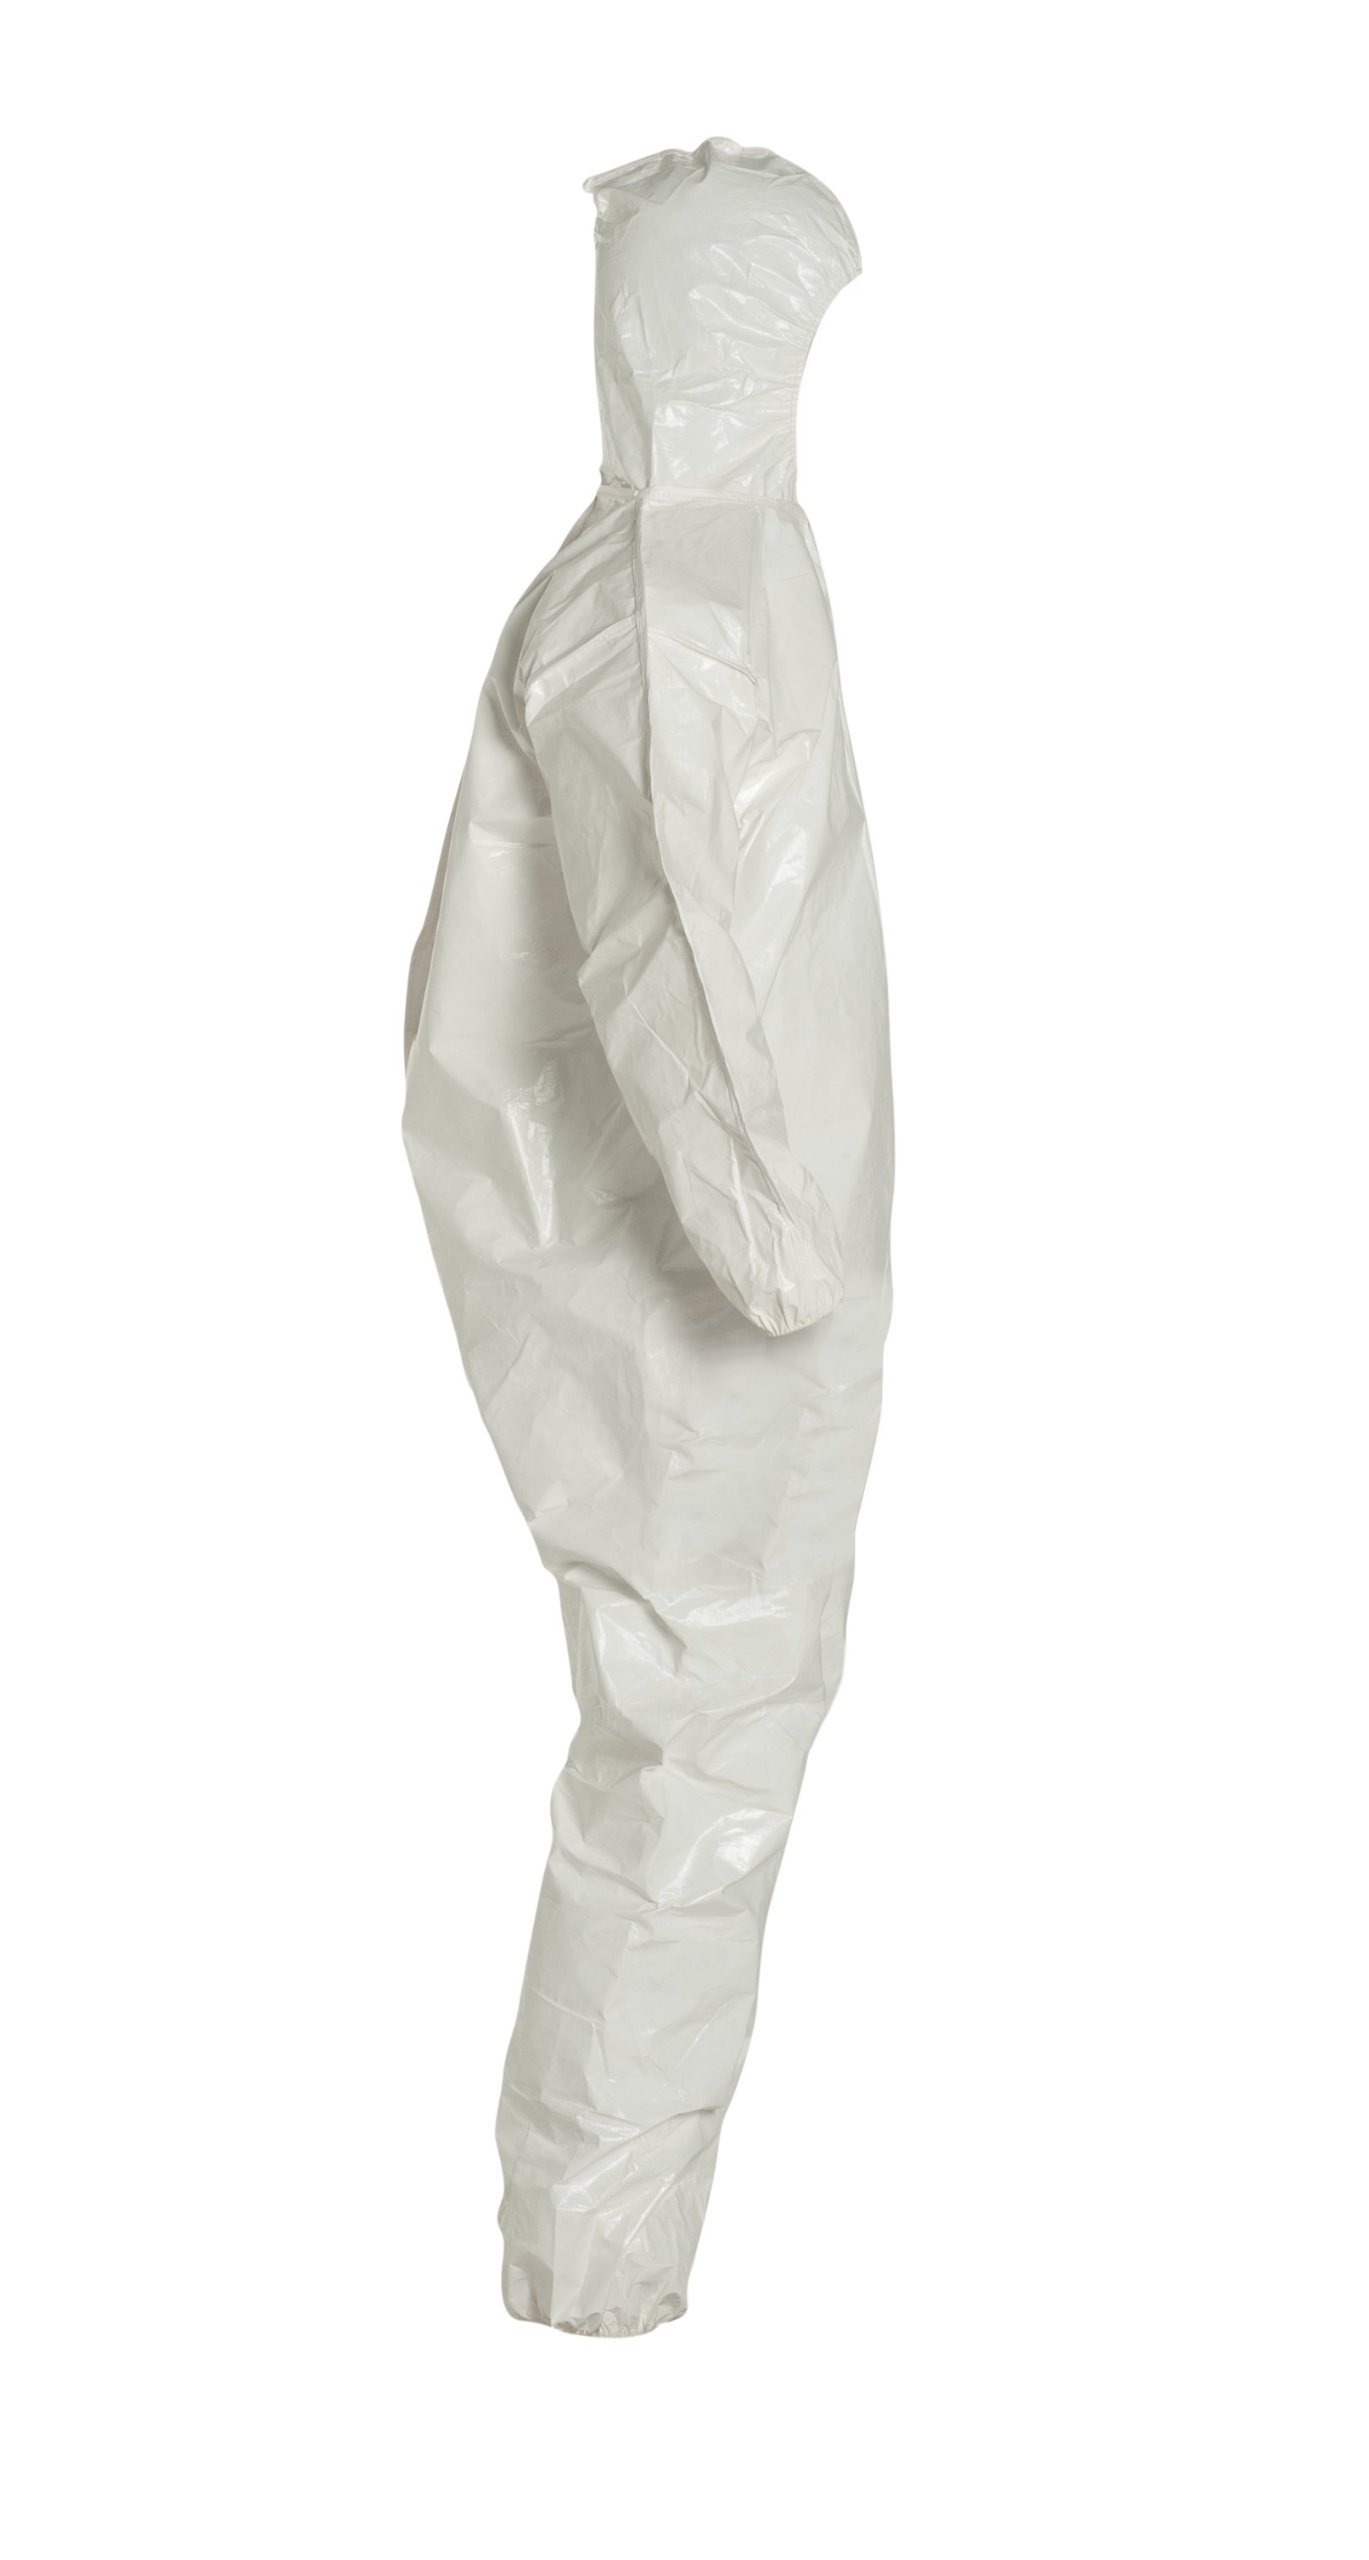 DuPont Tychem 4000 SL127B Disposable Chemical Resistant Coverall with Hood, Elastic Cuff and Bound Seams, White, 2X-Large (Pack of 12) by DuPont (Image #3)